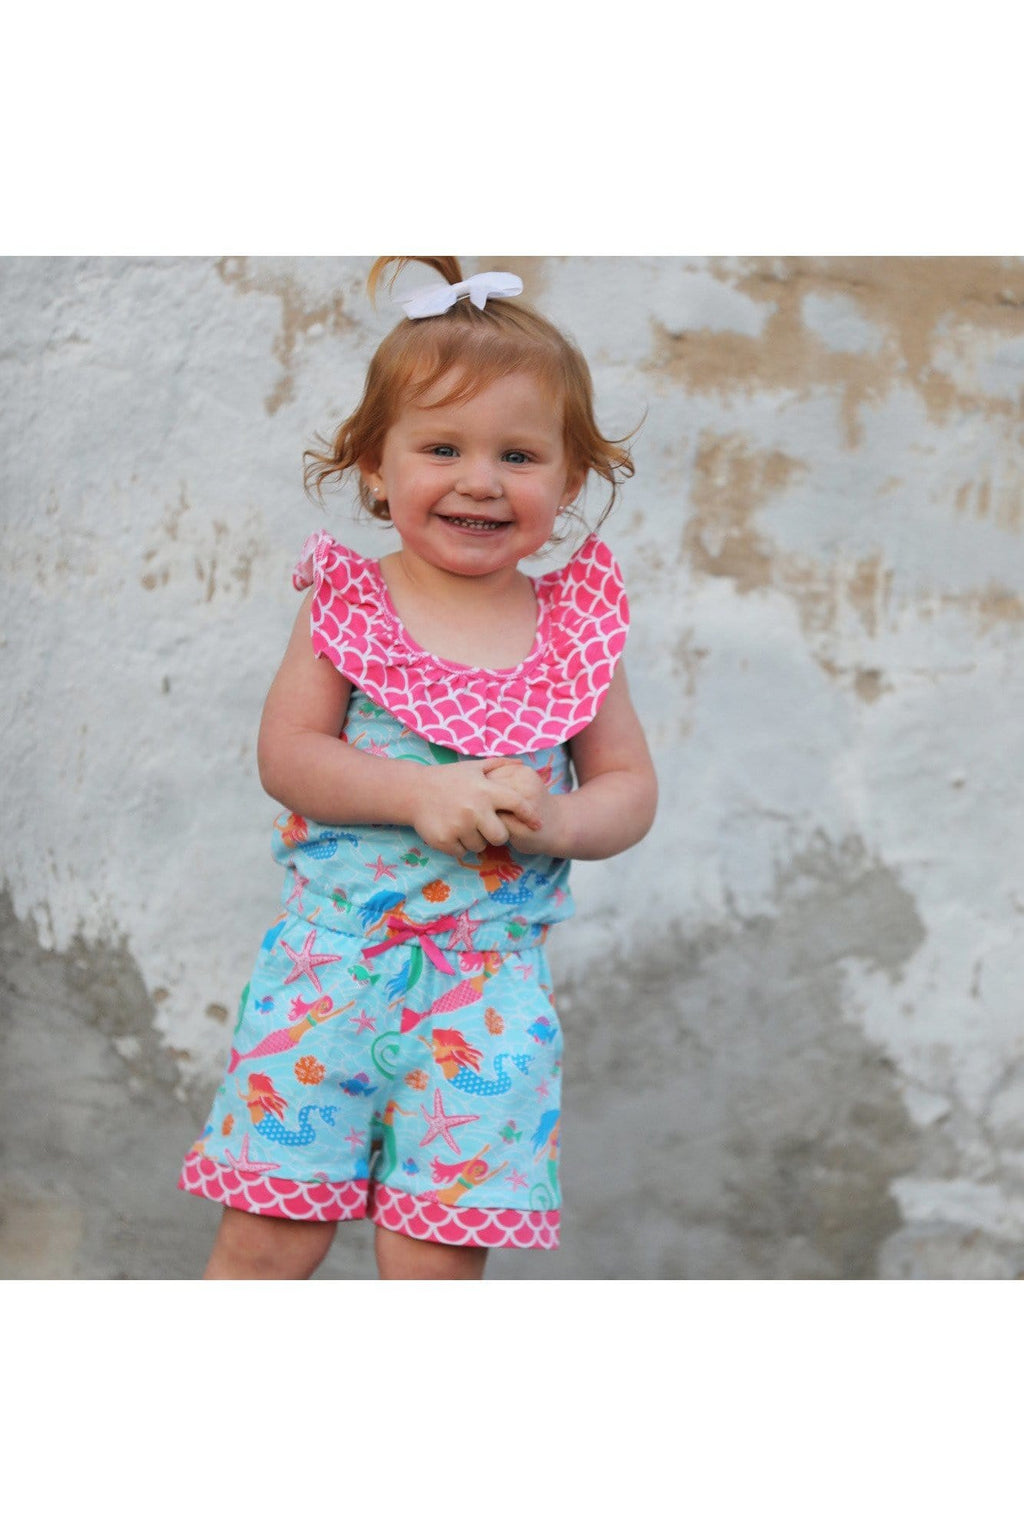 AnnLoren Little Big Girls Nautical Jumpsuit Mermaid Romper Spring Summer Boutique Clothing Sizes 2/3T - 11/12 - Himelhoch's